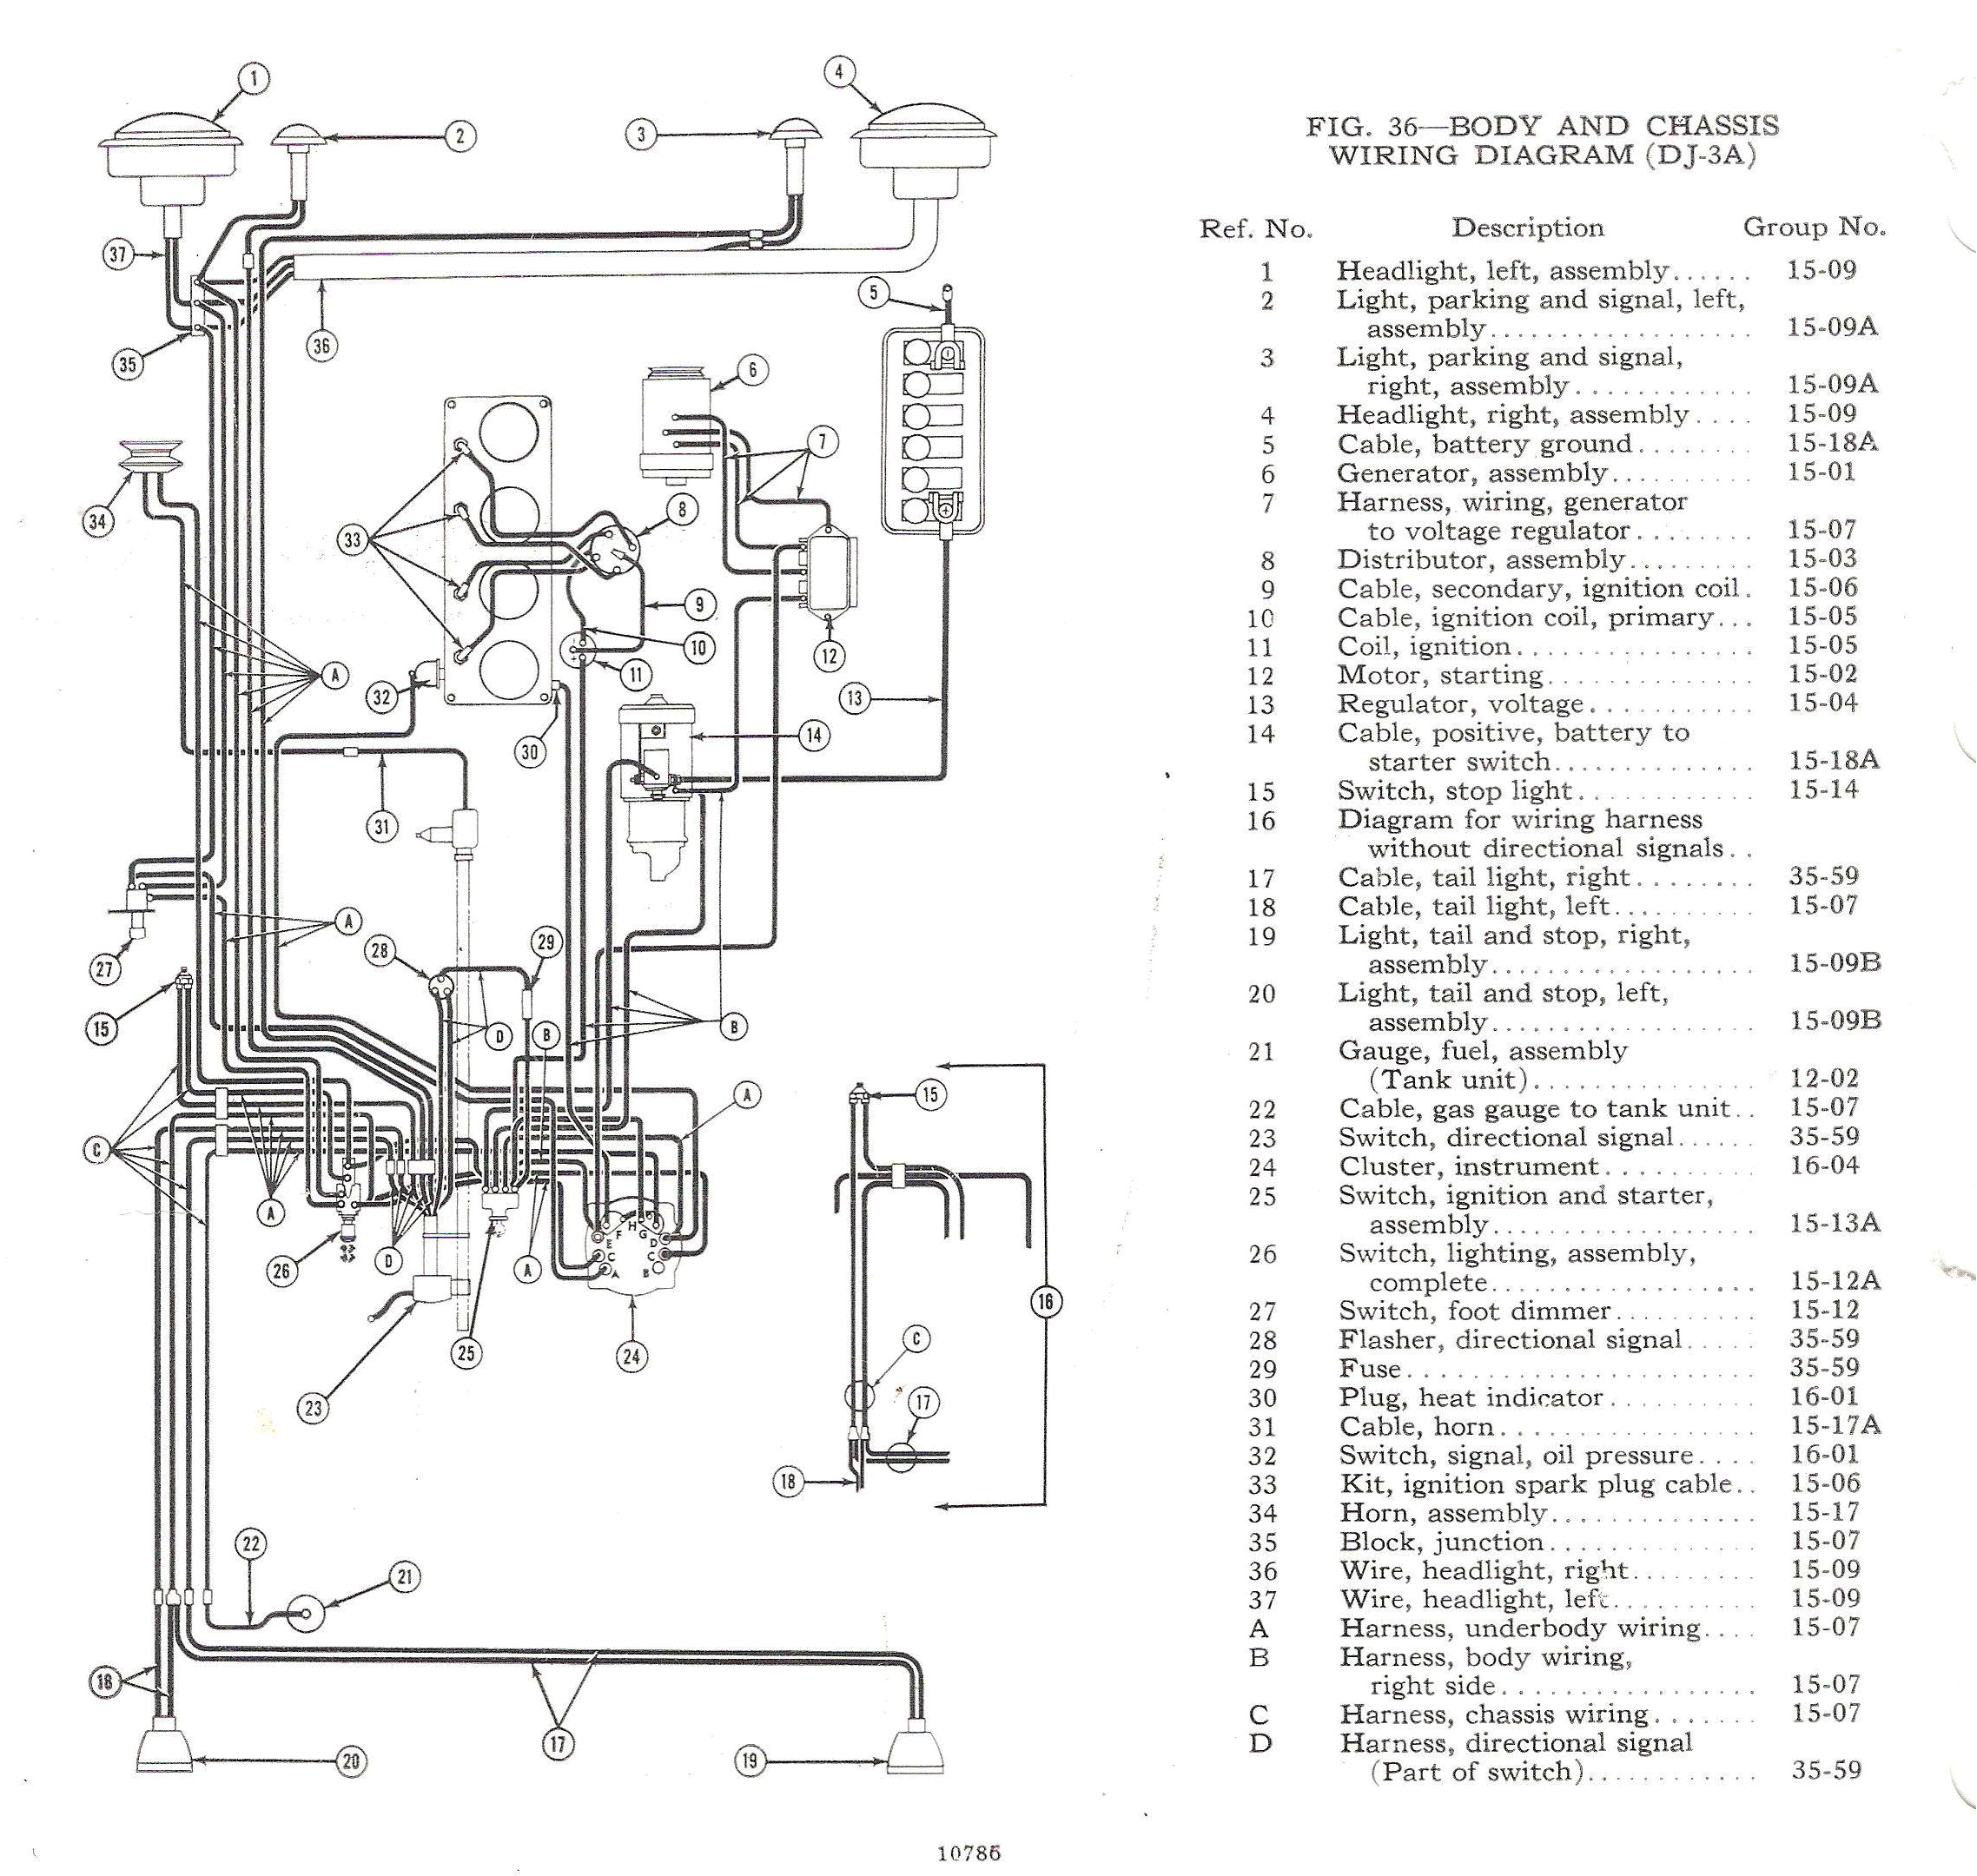 1971 Jeep Cj5 Wiring Diagram Sk 2584 Willys Mb Engine Diagram Download Diagram